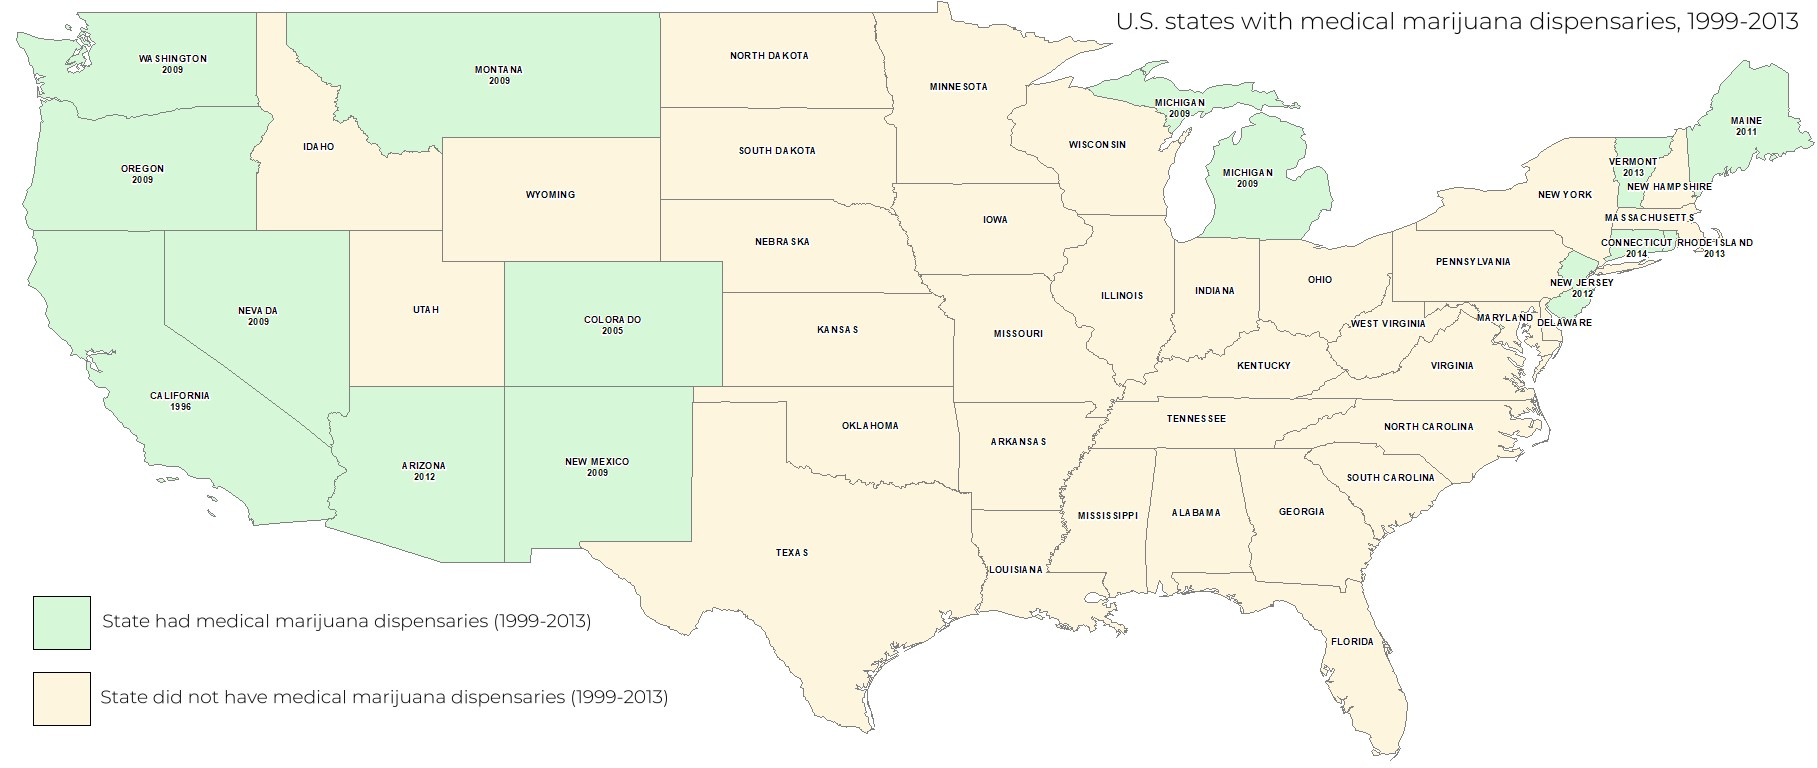 Map_MMJ_dispensaries_1999_2013_5_jpeg